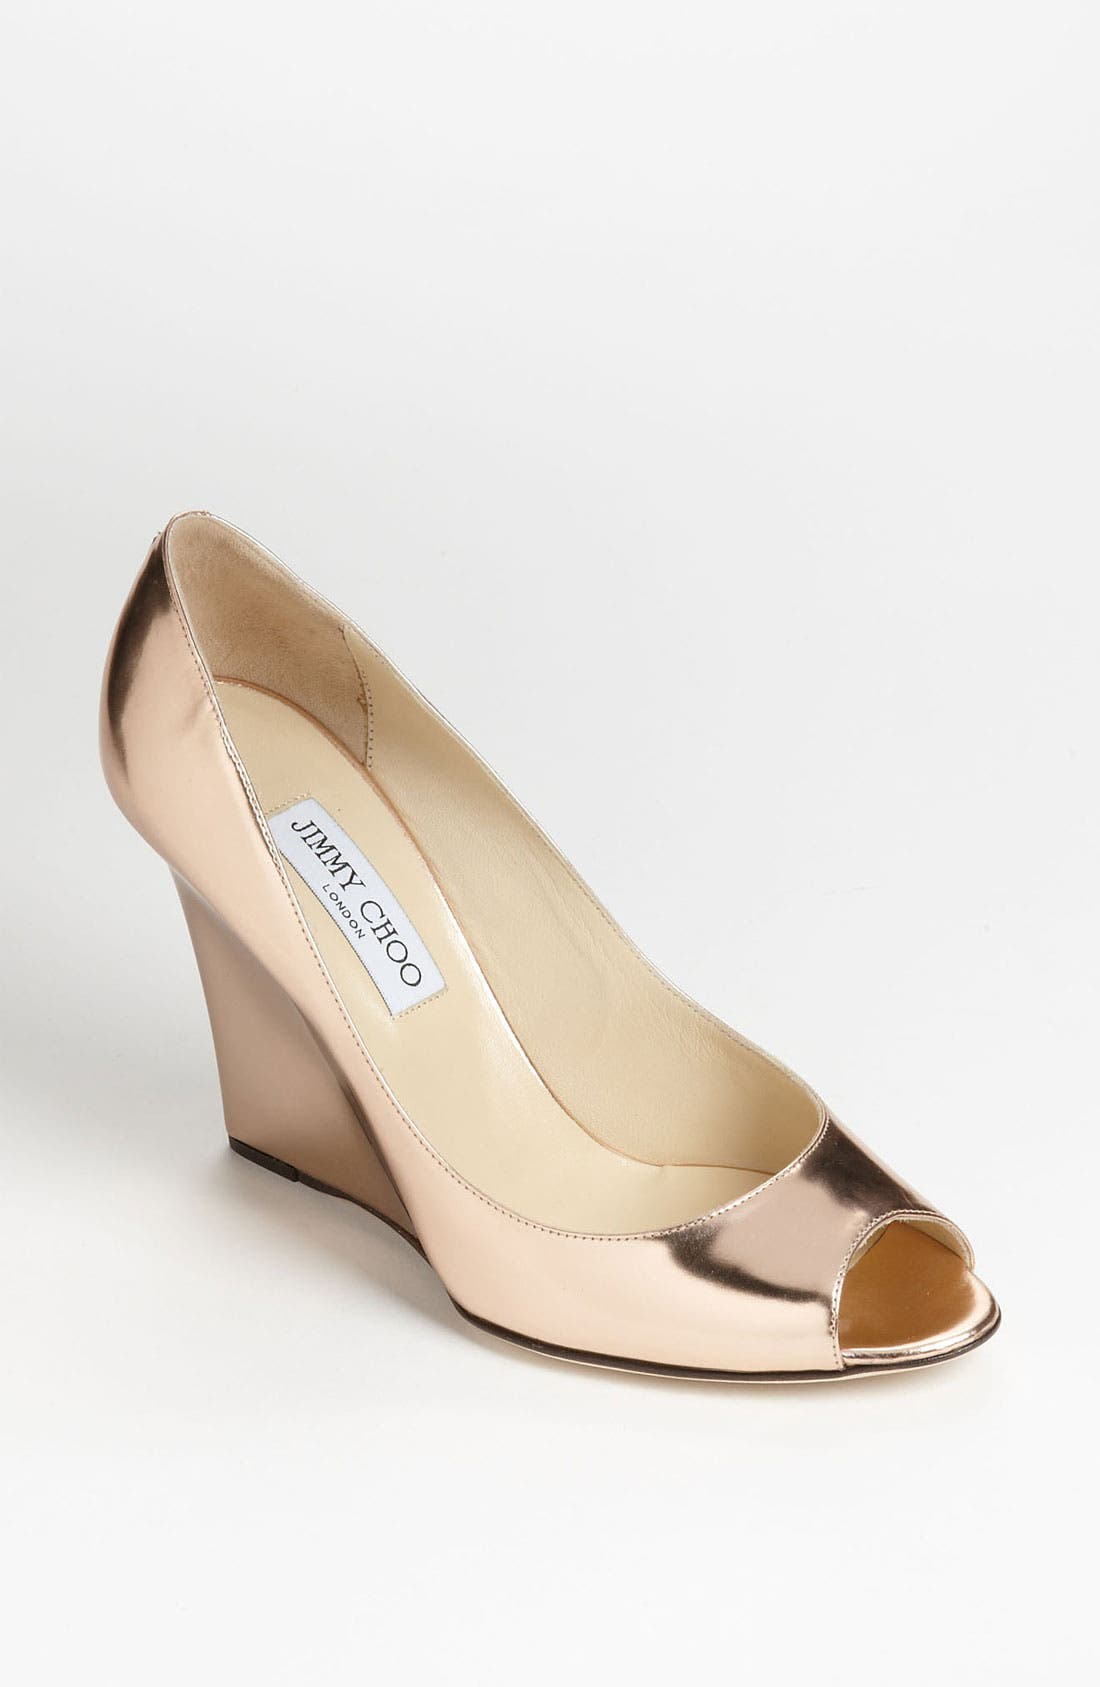 Alternate Image 1 Selected - Jimmy Choo 'Bello' Pump